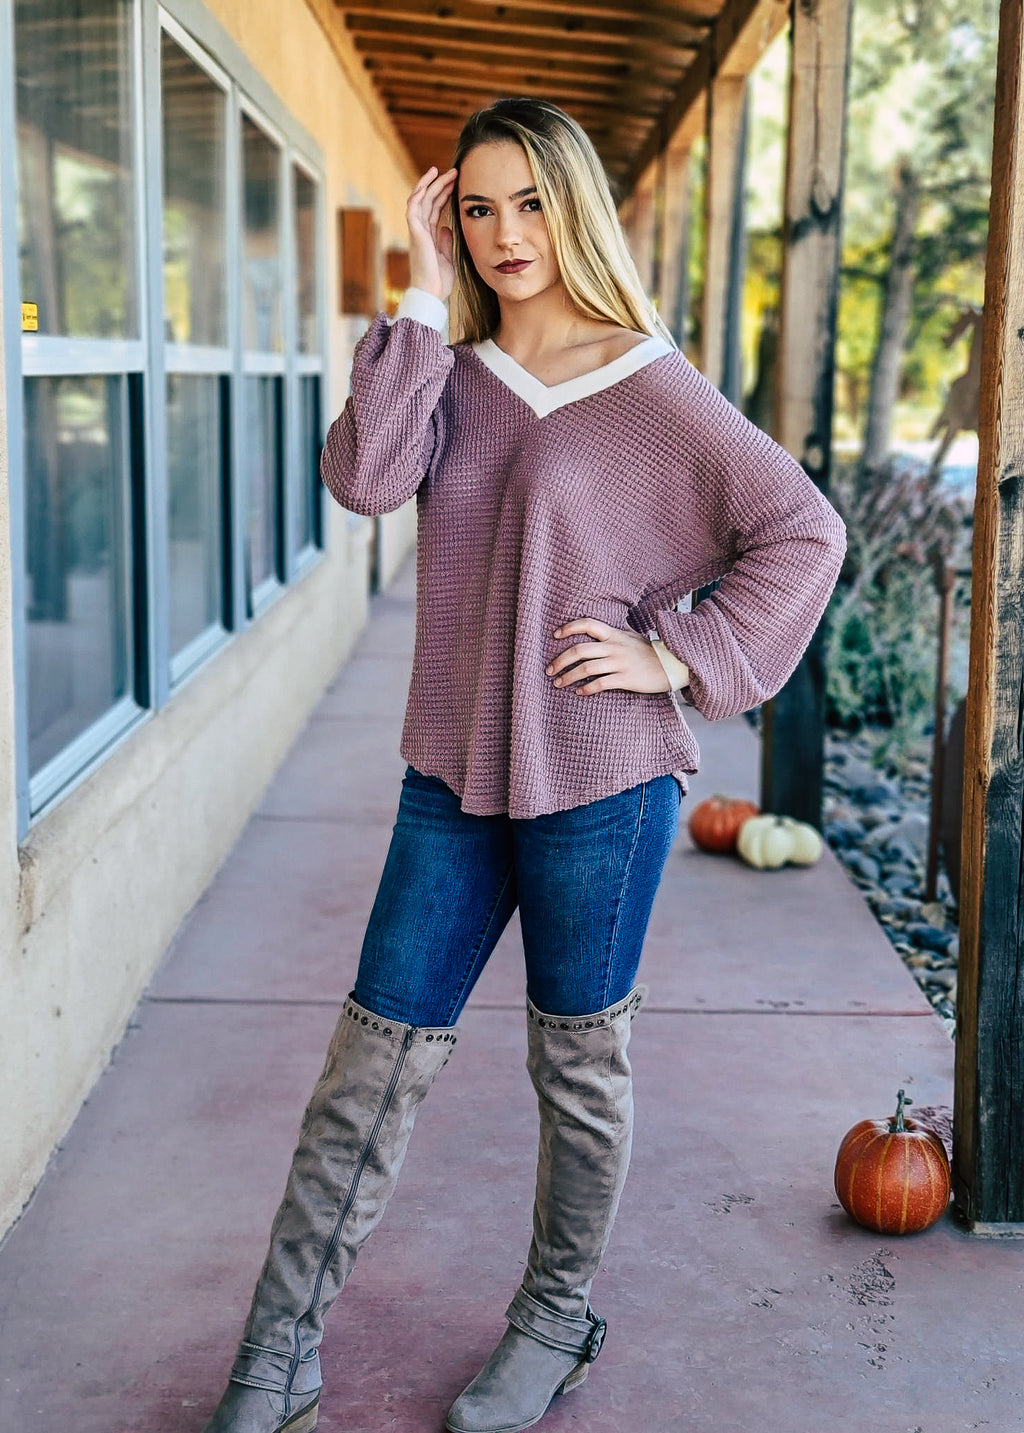 Mauve Waffle V Neck Long Sleeve Top with Ivory Trim Around the Neck and Arms, on Blonde Model With Denim Jeans and Knee High Boots, Taken Outside in Natural Light